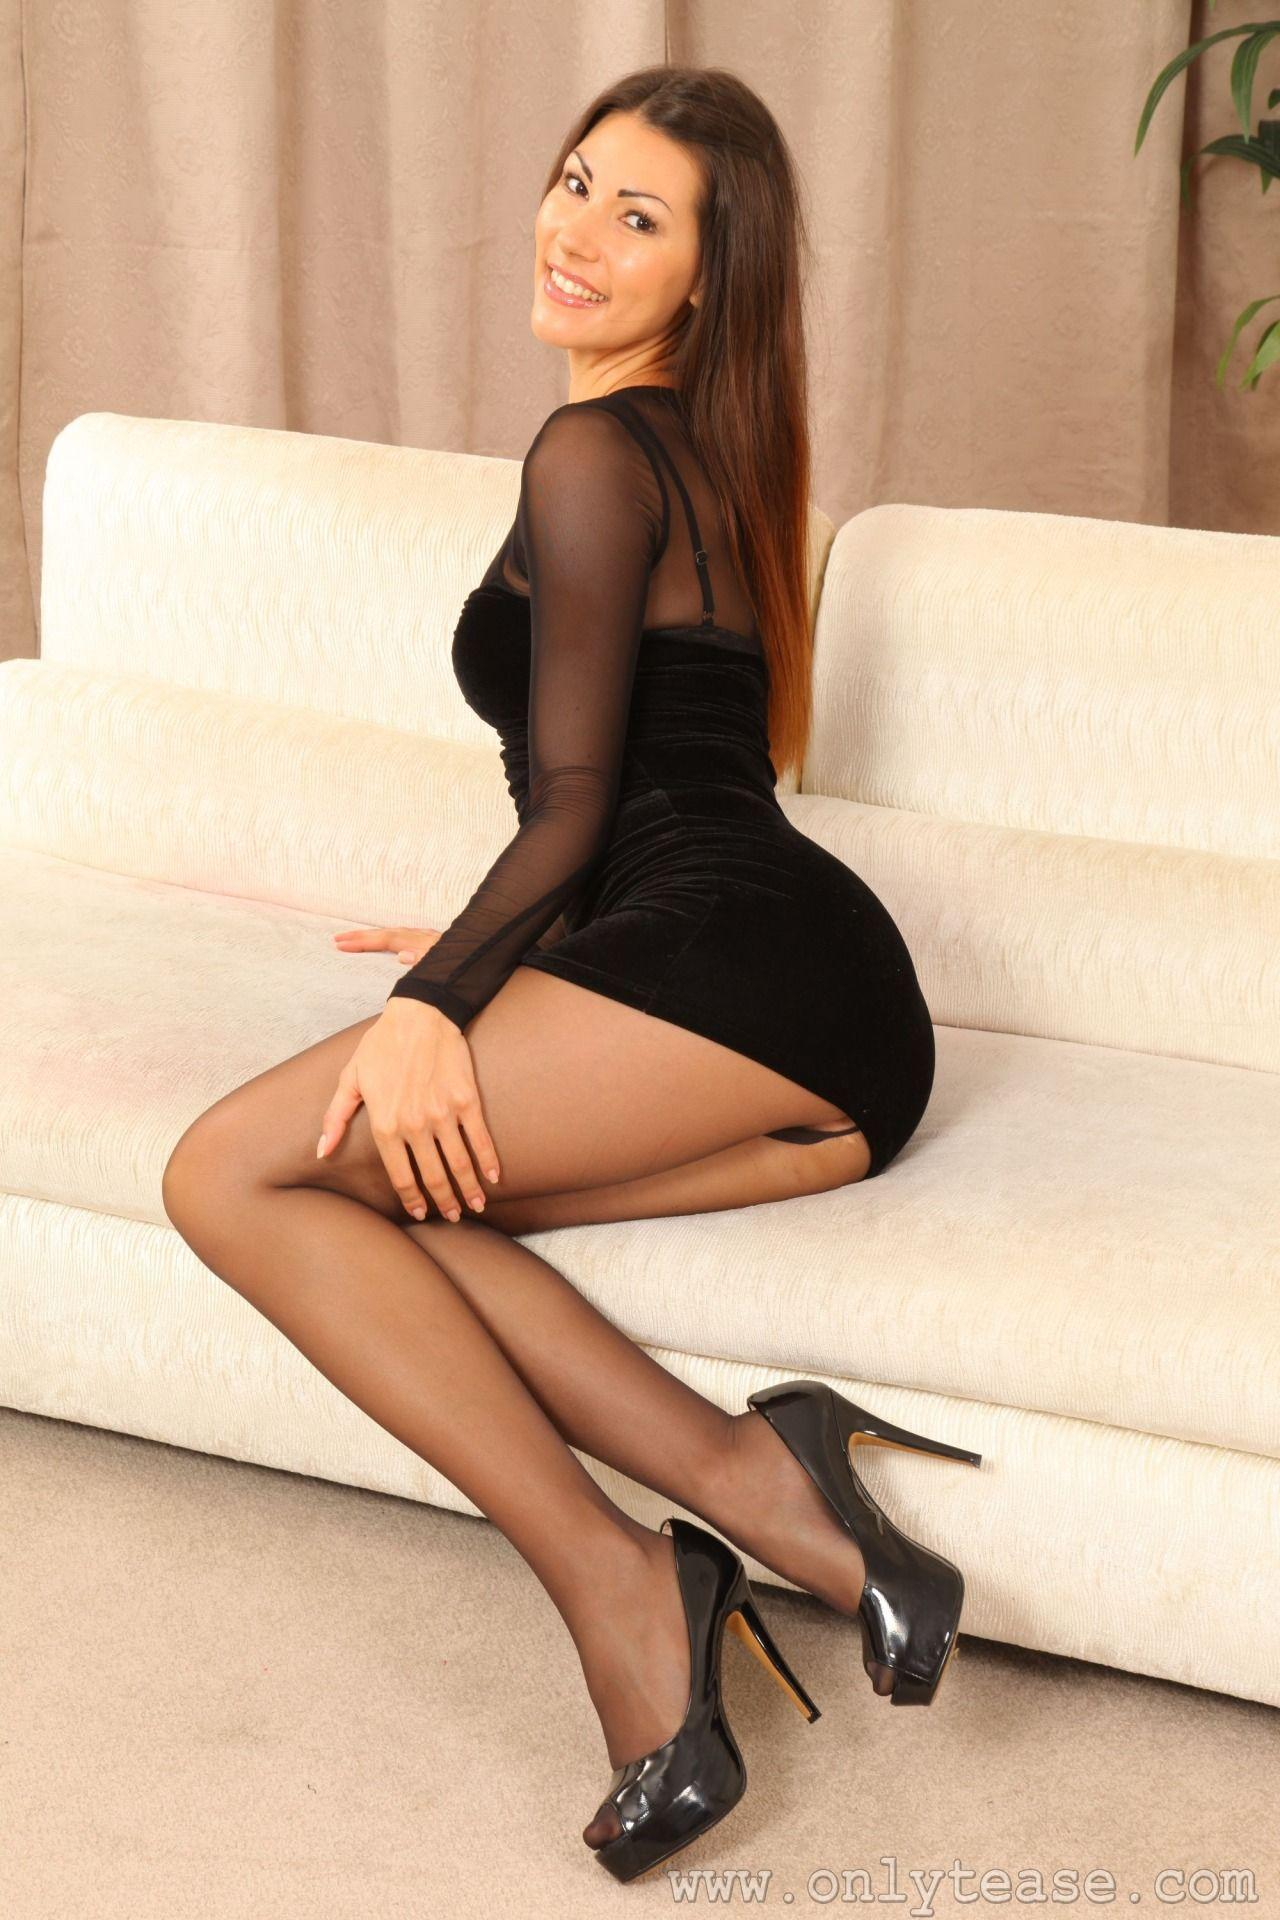 Nylons Short Skirt